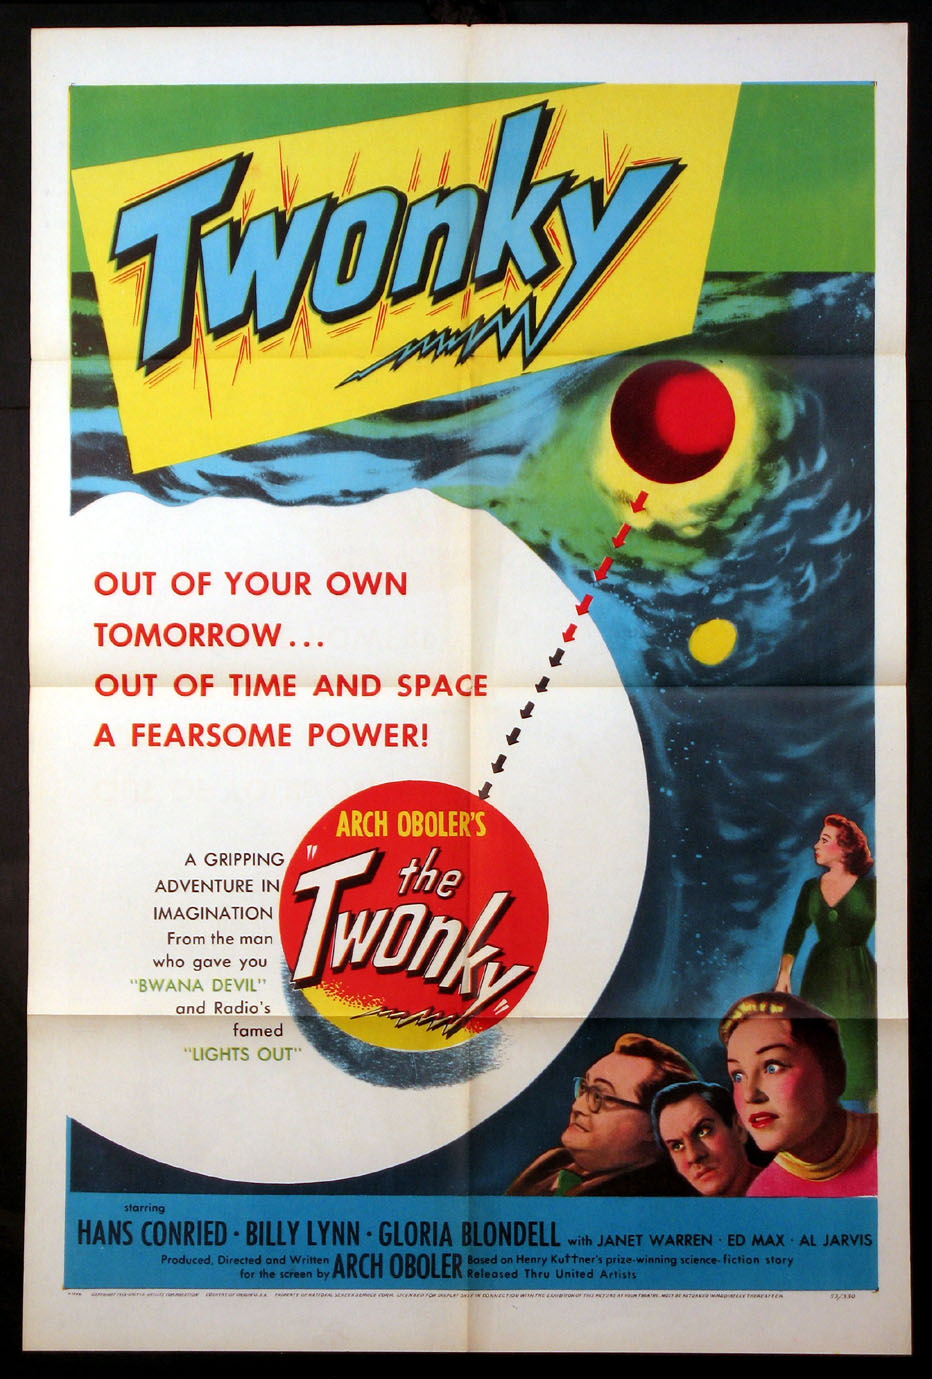 TWONKY (Arch Oboler's The Twonky) @ FilmPosters.com